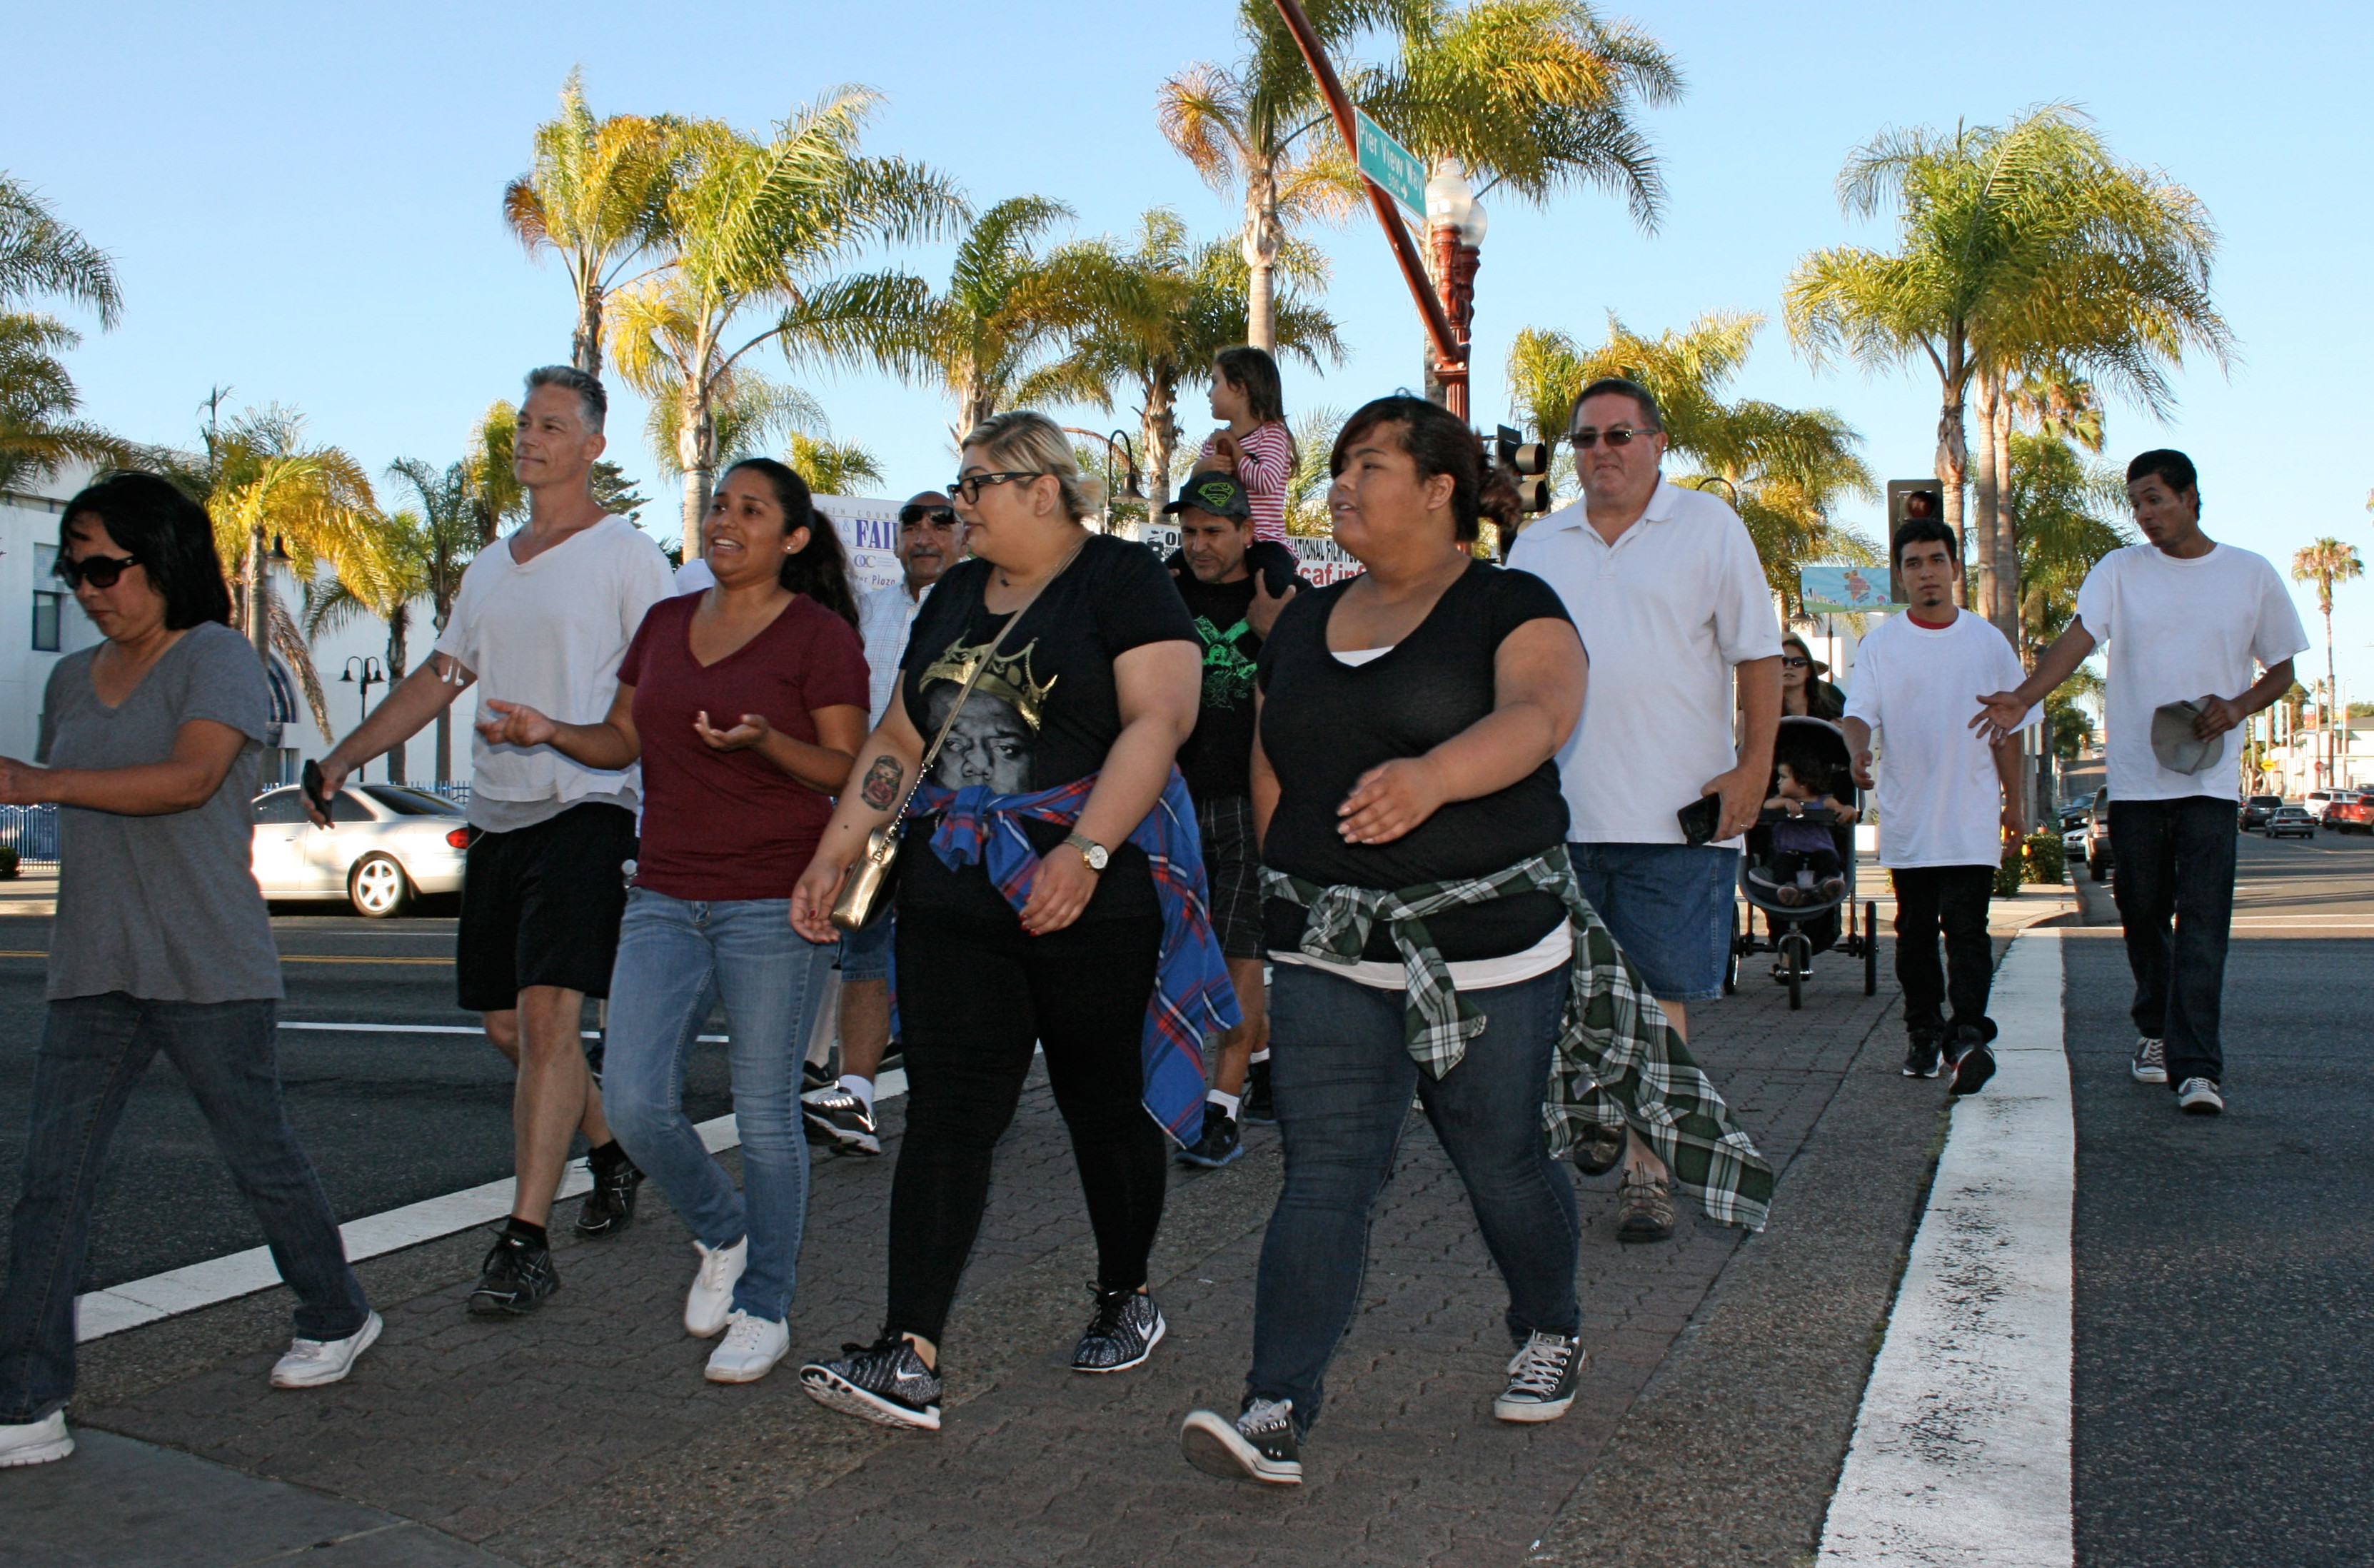 Dozens of people take part in a peace walk during National Night Out. The annual walk went down Pier View Way to the amphitheater. Photo by Promise Yee